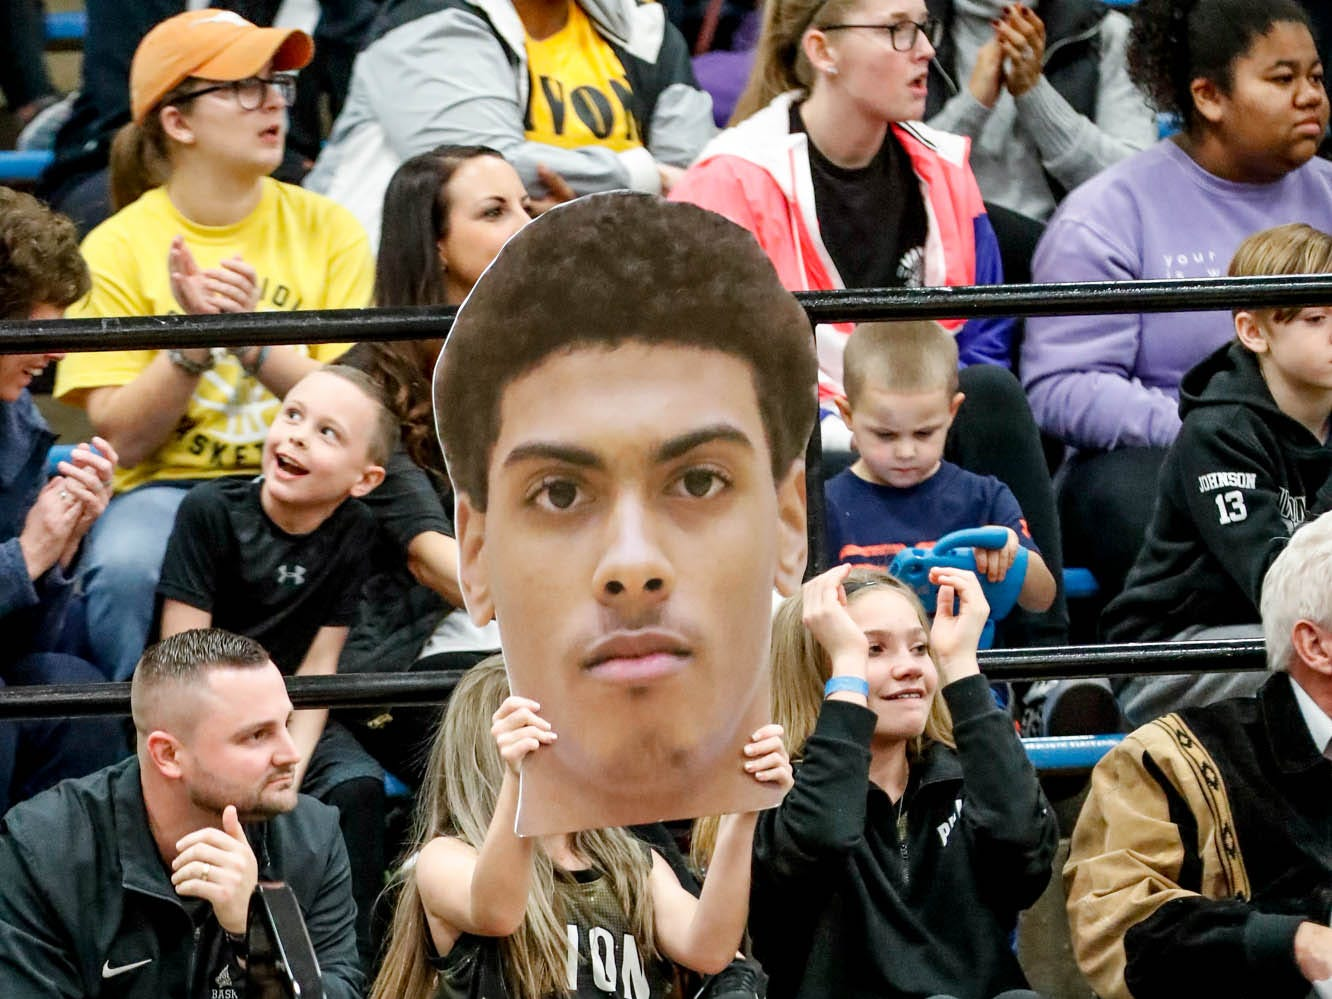 A fan holds a photo during the 2019 Hendricks County Basketball Tournament game between the Avon High School boys varsity basketball team and Brownsburg High School, held at Cascade High School on Saturday, Jan. 5, 2019.